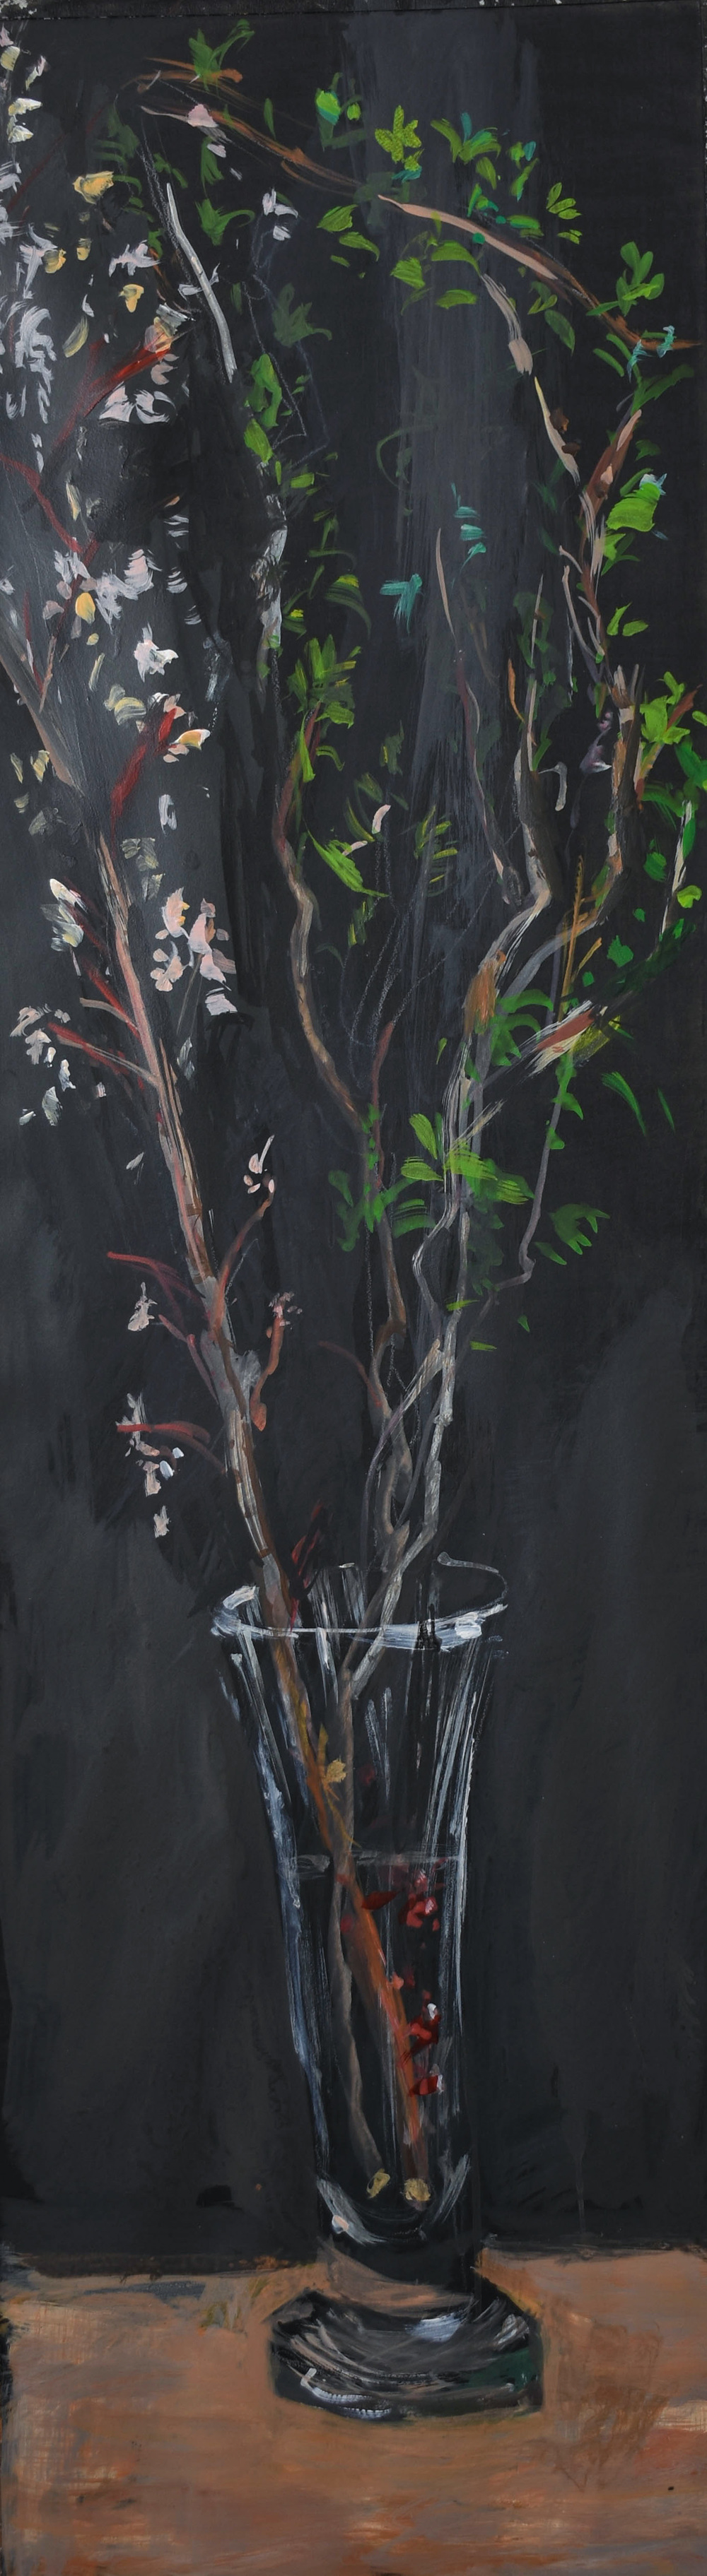 site--4-14-16 PT flowering apricot painting LtRm (8 of 9).jpg